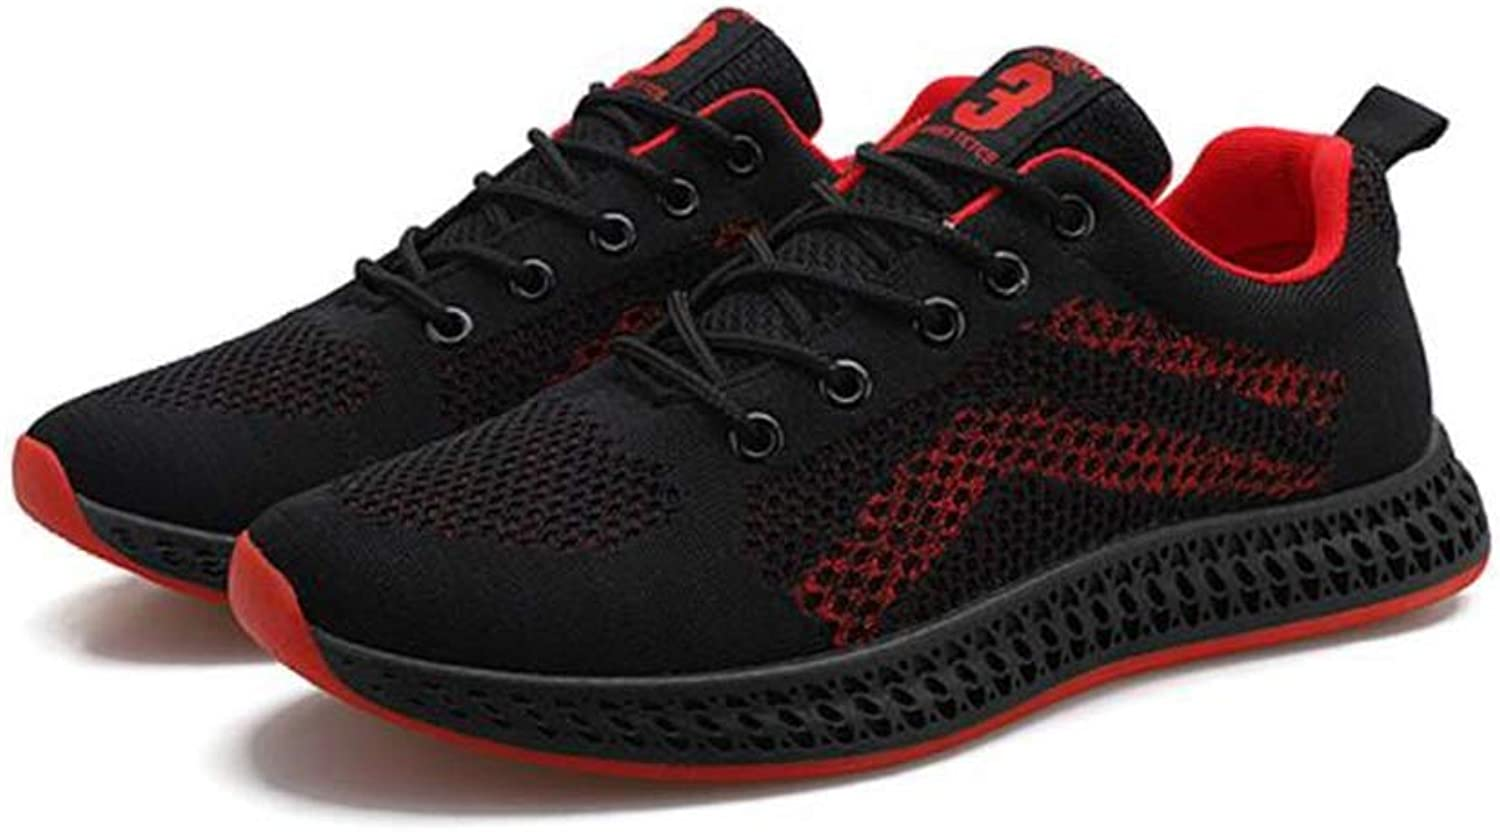 HIAO sandals Knitting shoes Motion Net Breathable Flying Weaving Male Student Jogging Male Spring Summer Light Black Red Splice Simple Refreshing (color   Black, Size   5.5 UK)